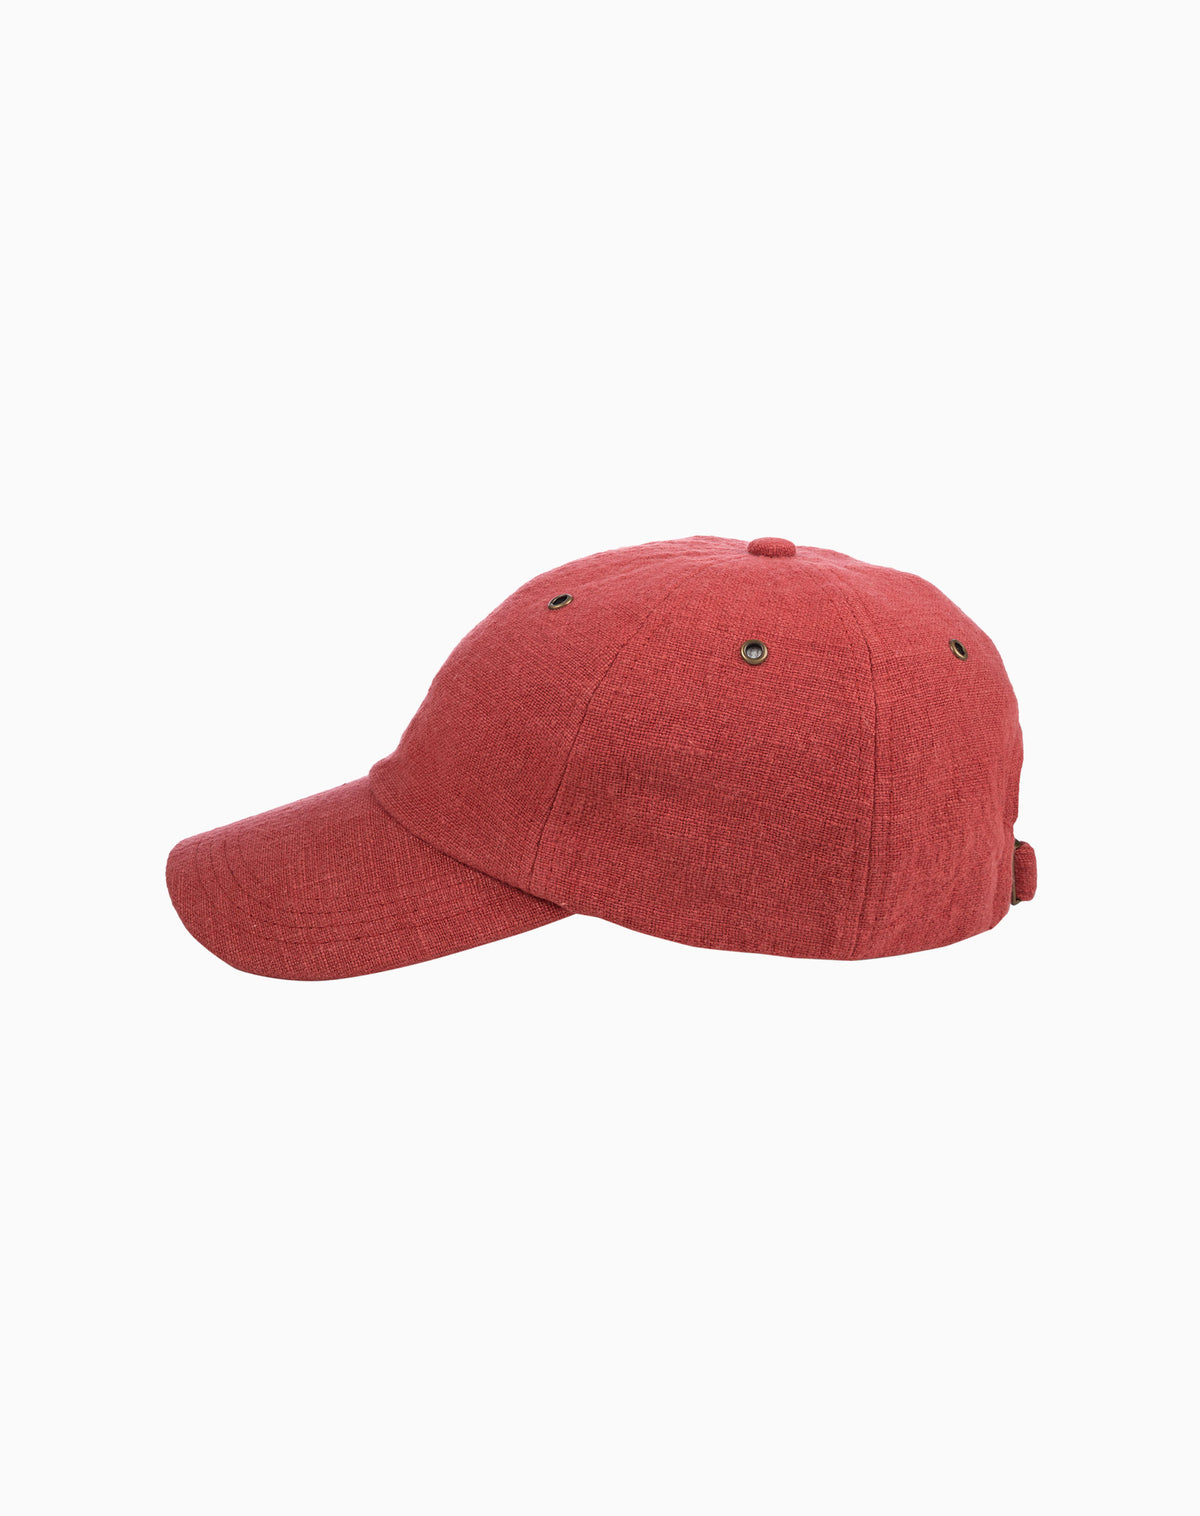 Linen 6-Panel in Red